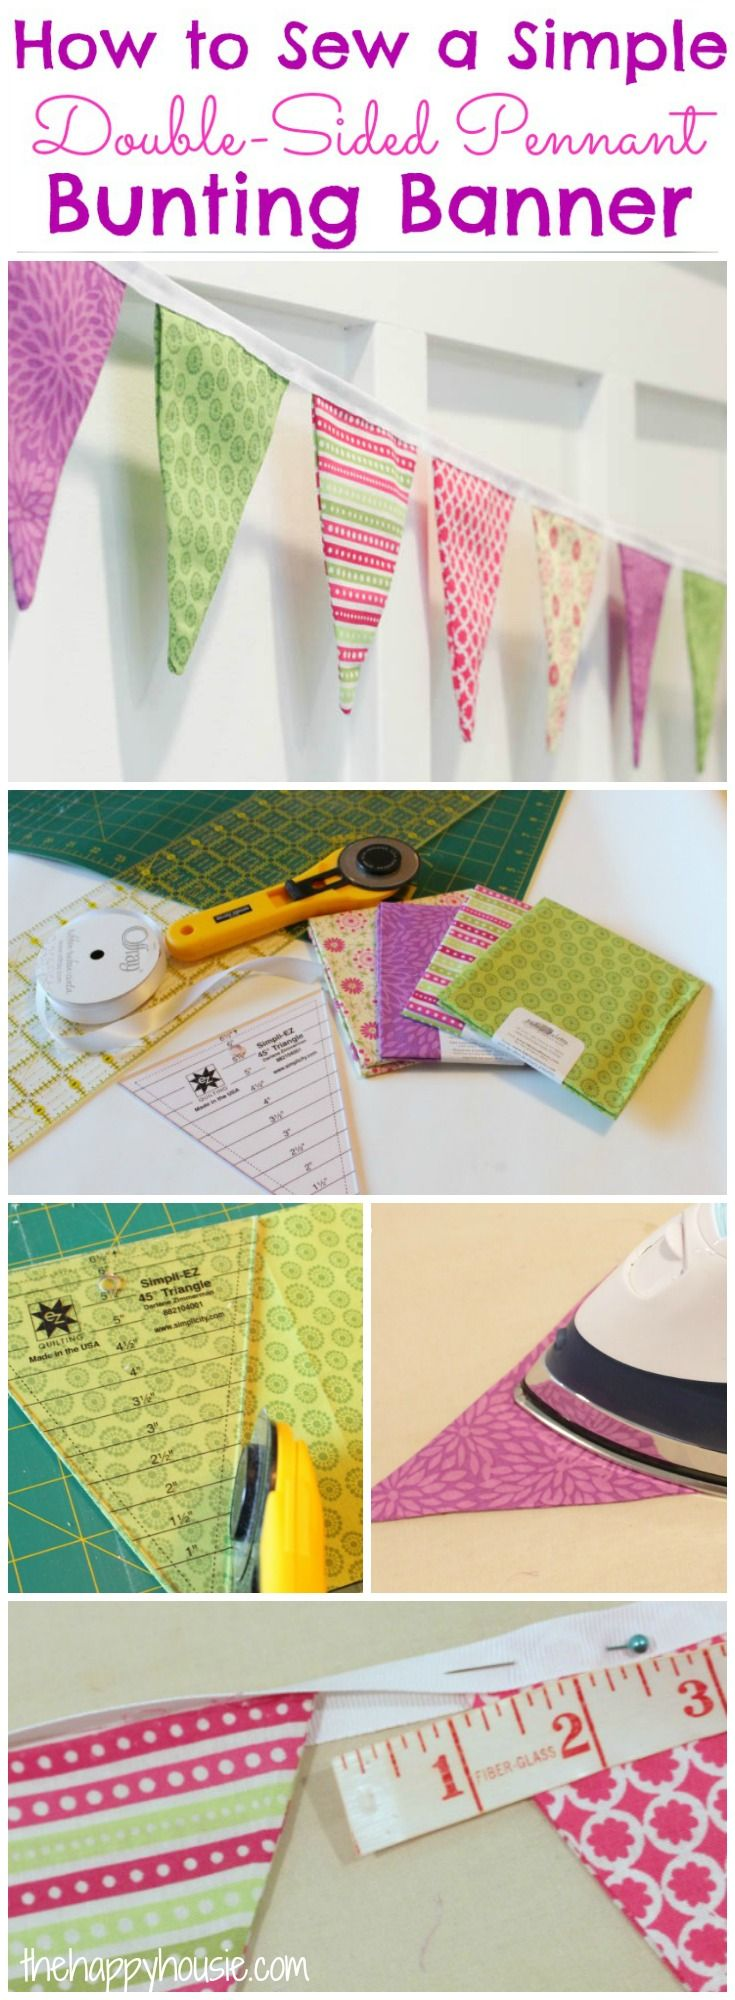 You can sew your own pennant with this easy tutorial for how to sew a simple double-sided pennant bunting banner at thehappyhousie.com